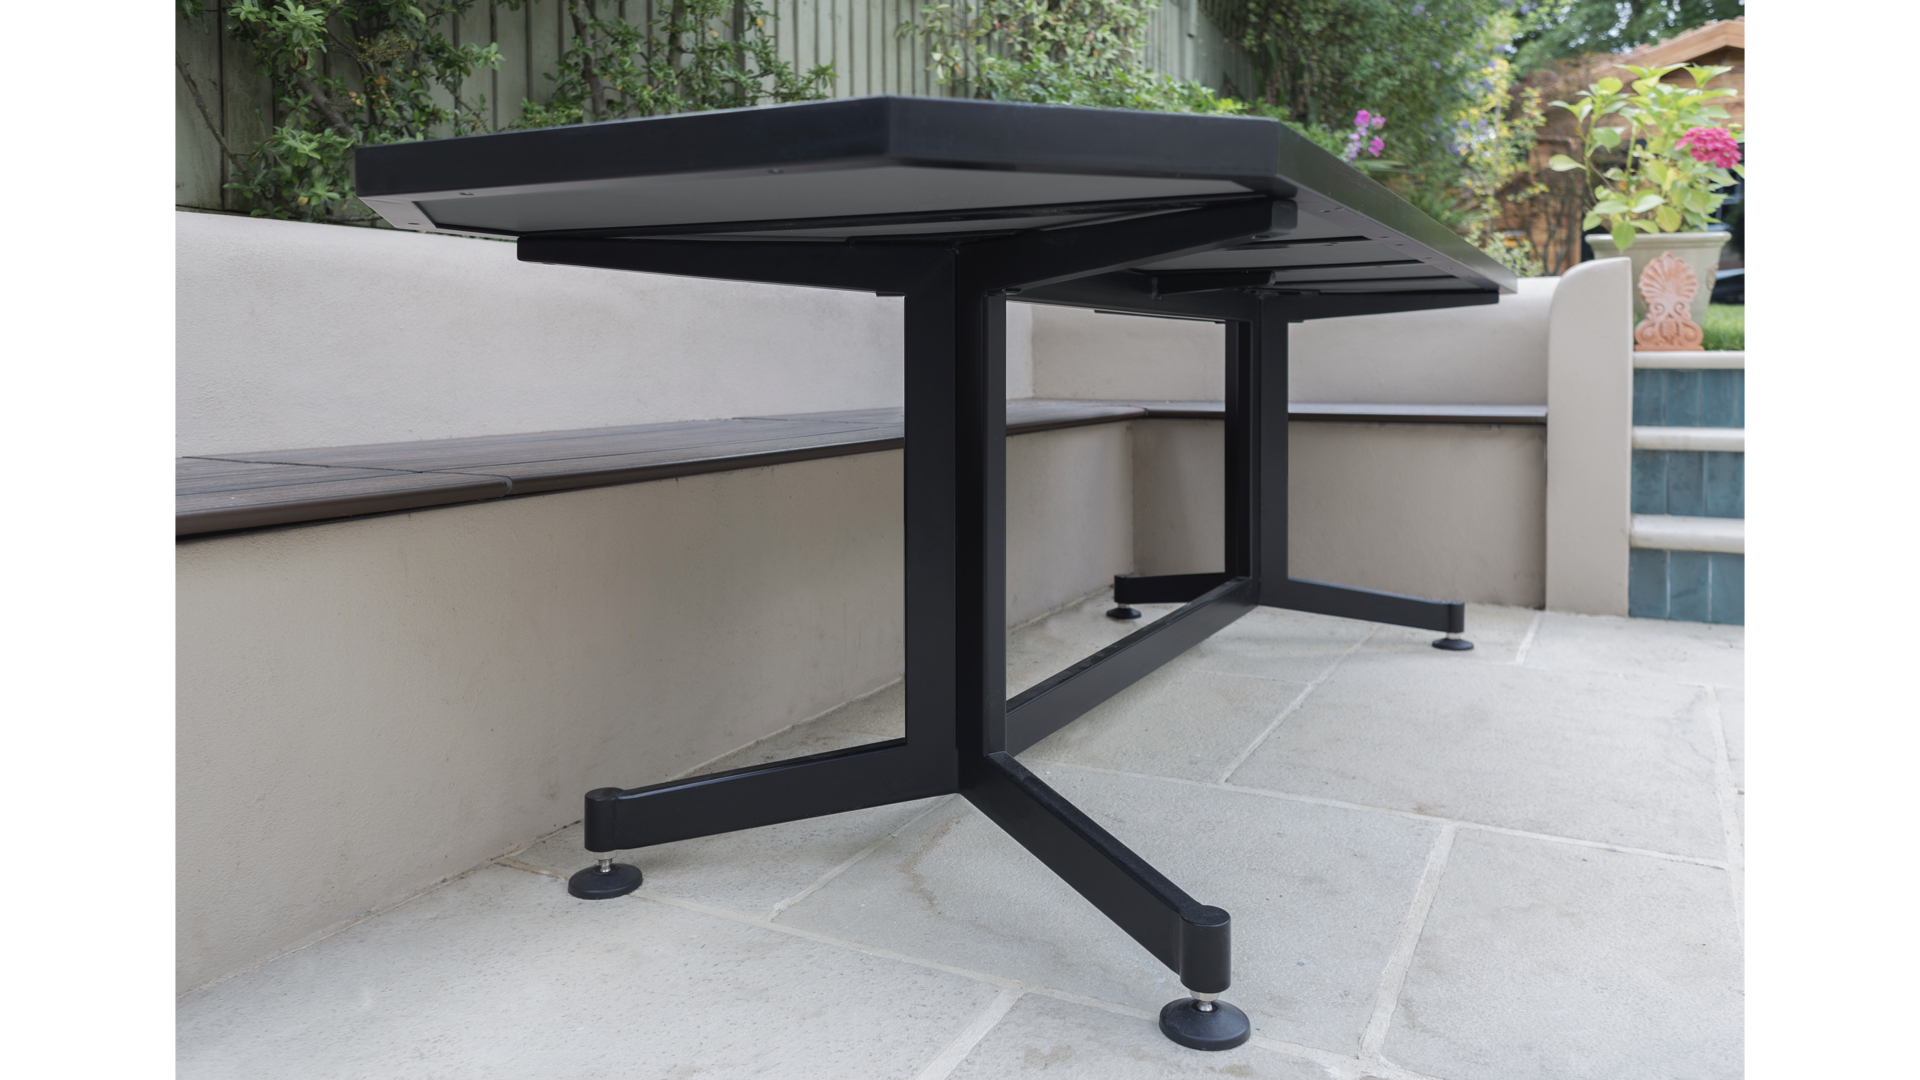 Terrazzo Outdoor Dining Table iv | © Bernardo Guillermo Studio